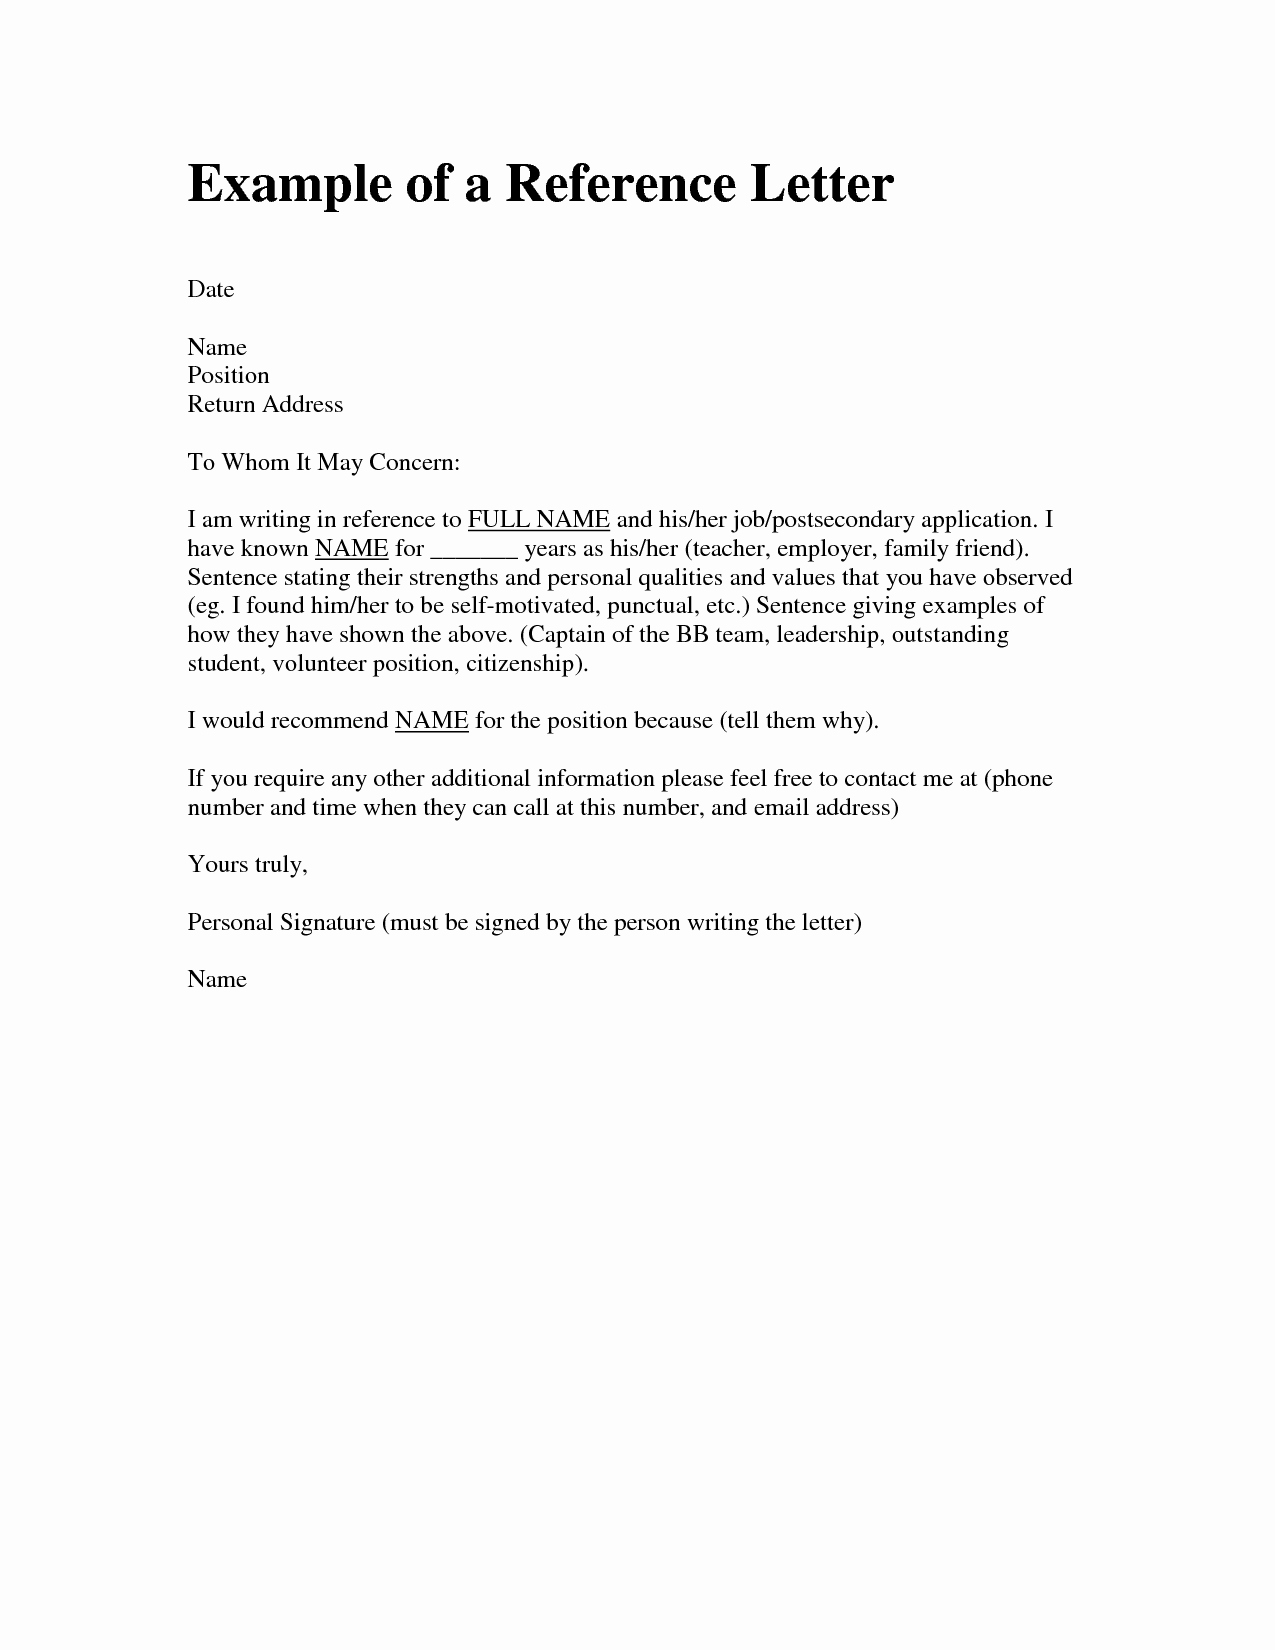 Reference Letter Template Free Beautiful Letter Re Mendation Template for Friend Letter Art